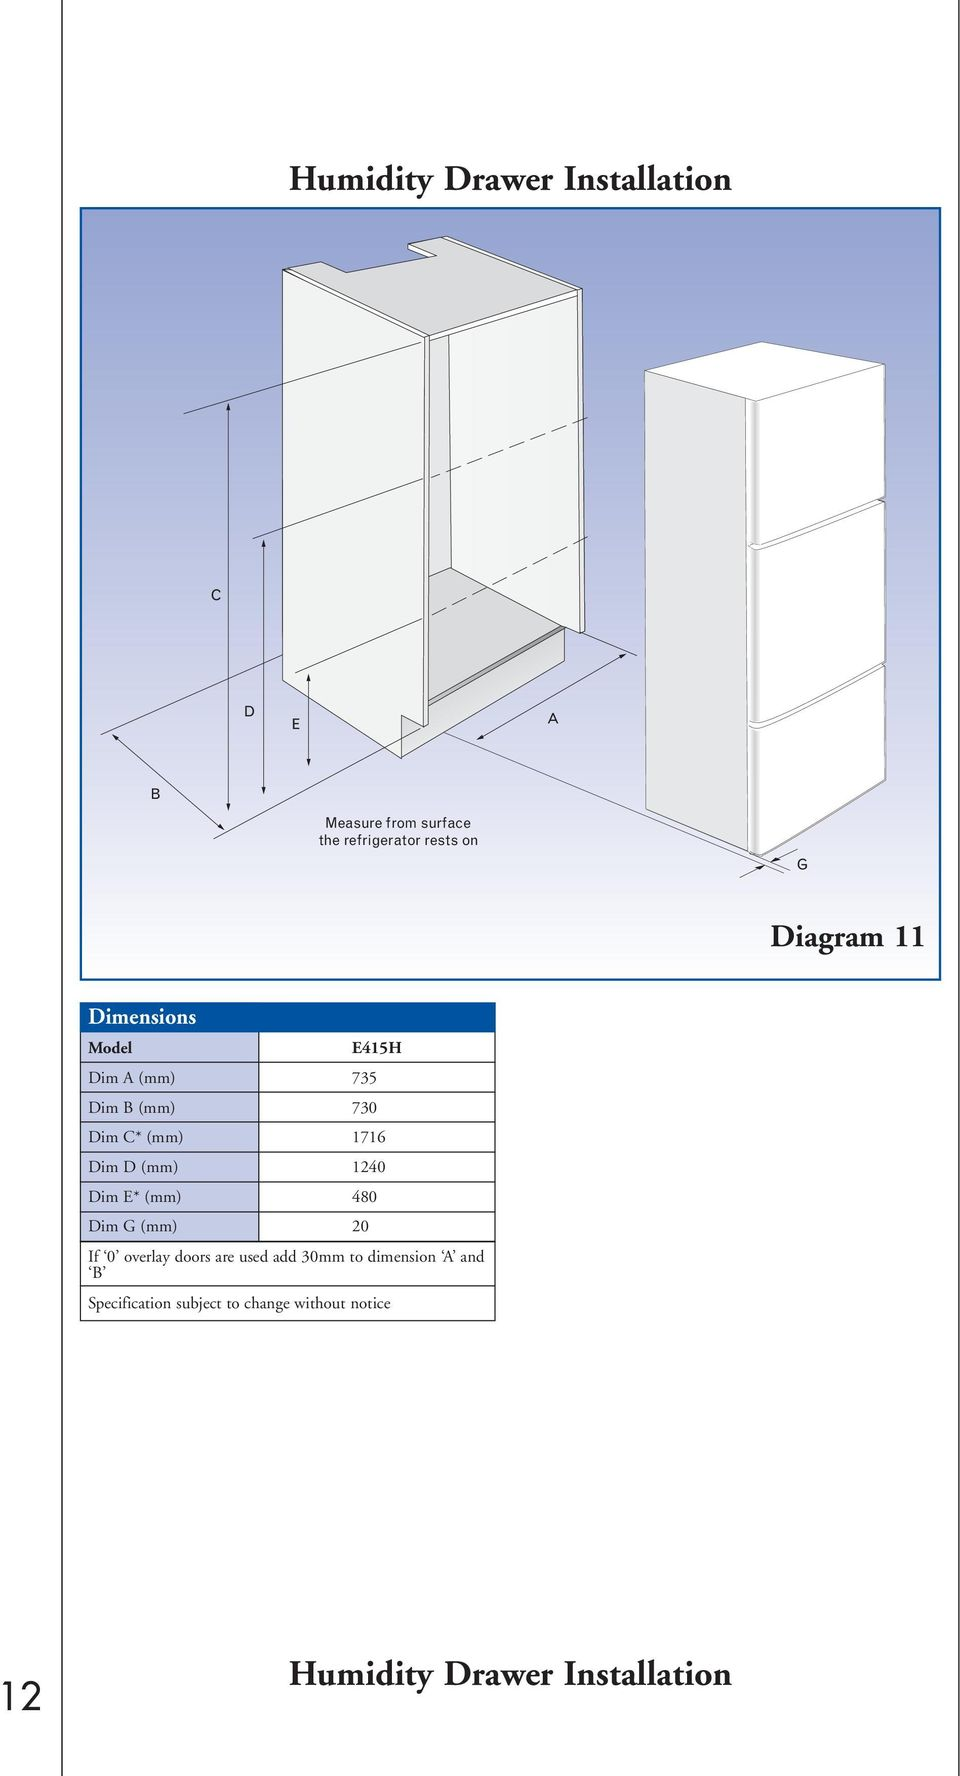 1240 Dim E* (mm) 480 Dim G (mm) 20 If 0 overlay doors are used add 30mm to dimension